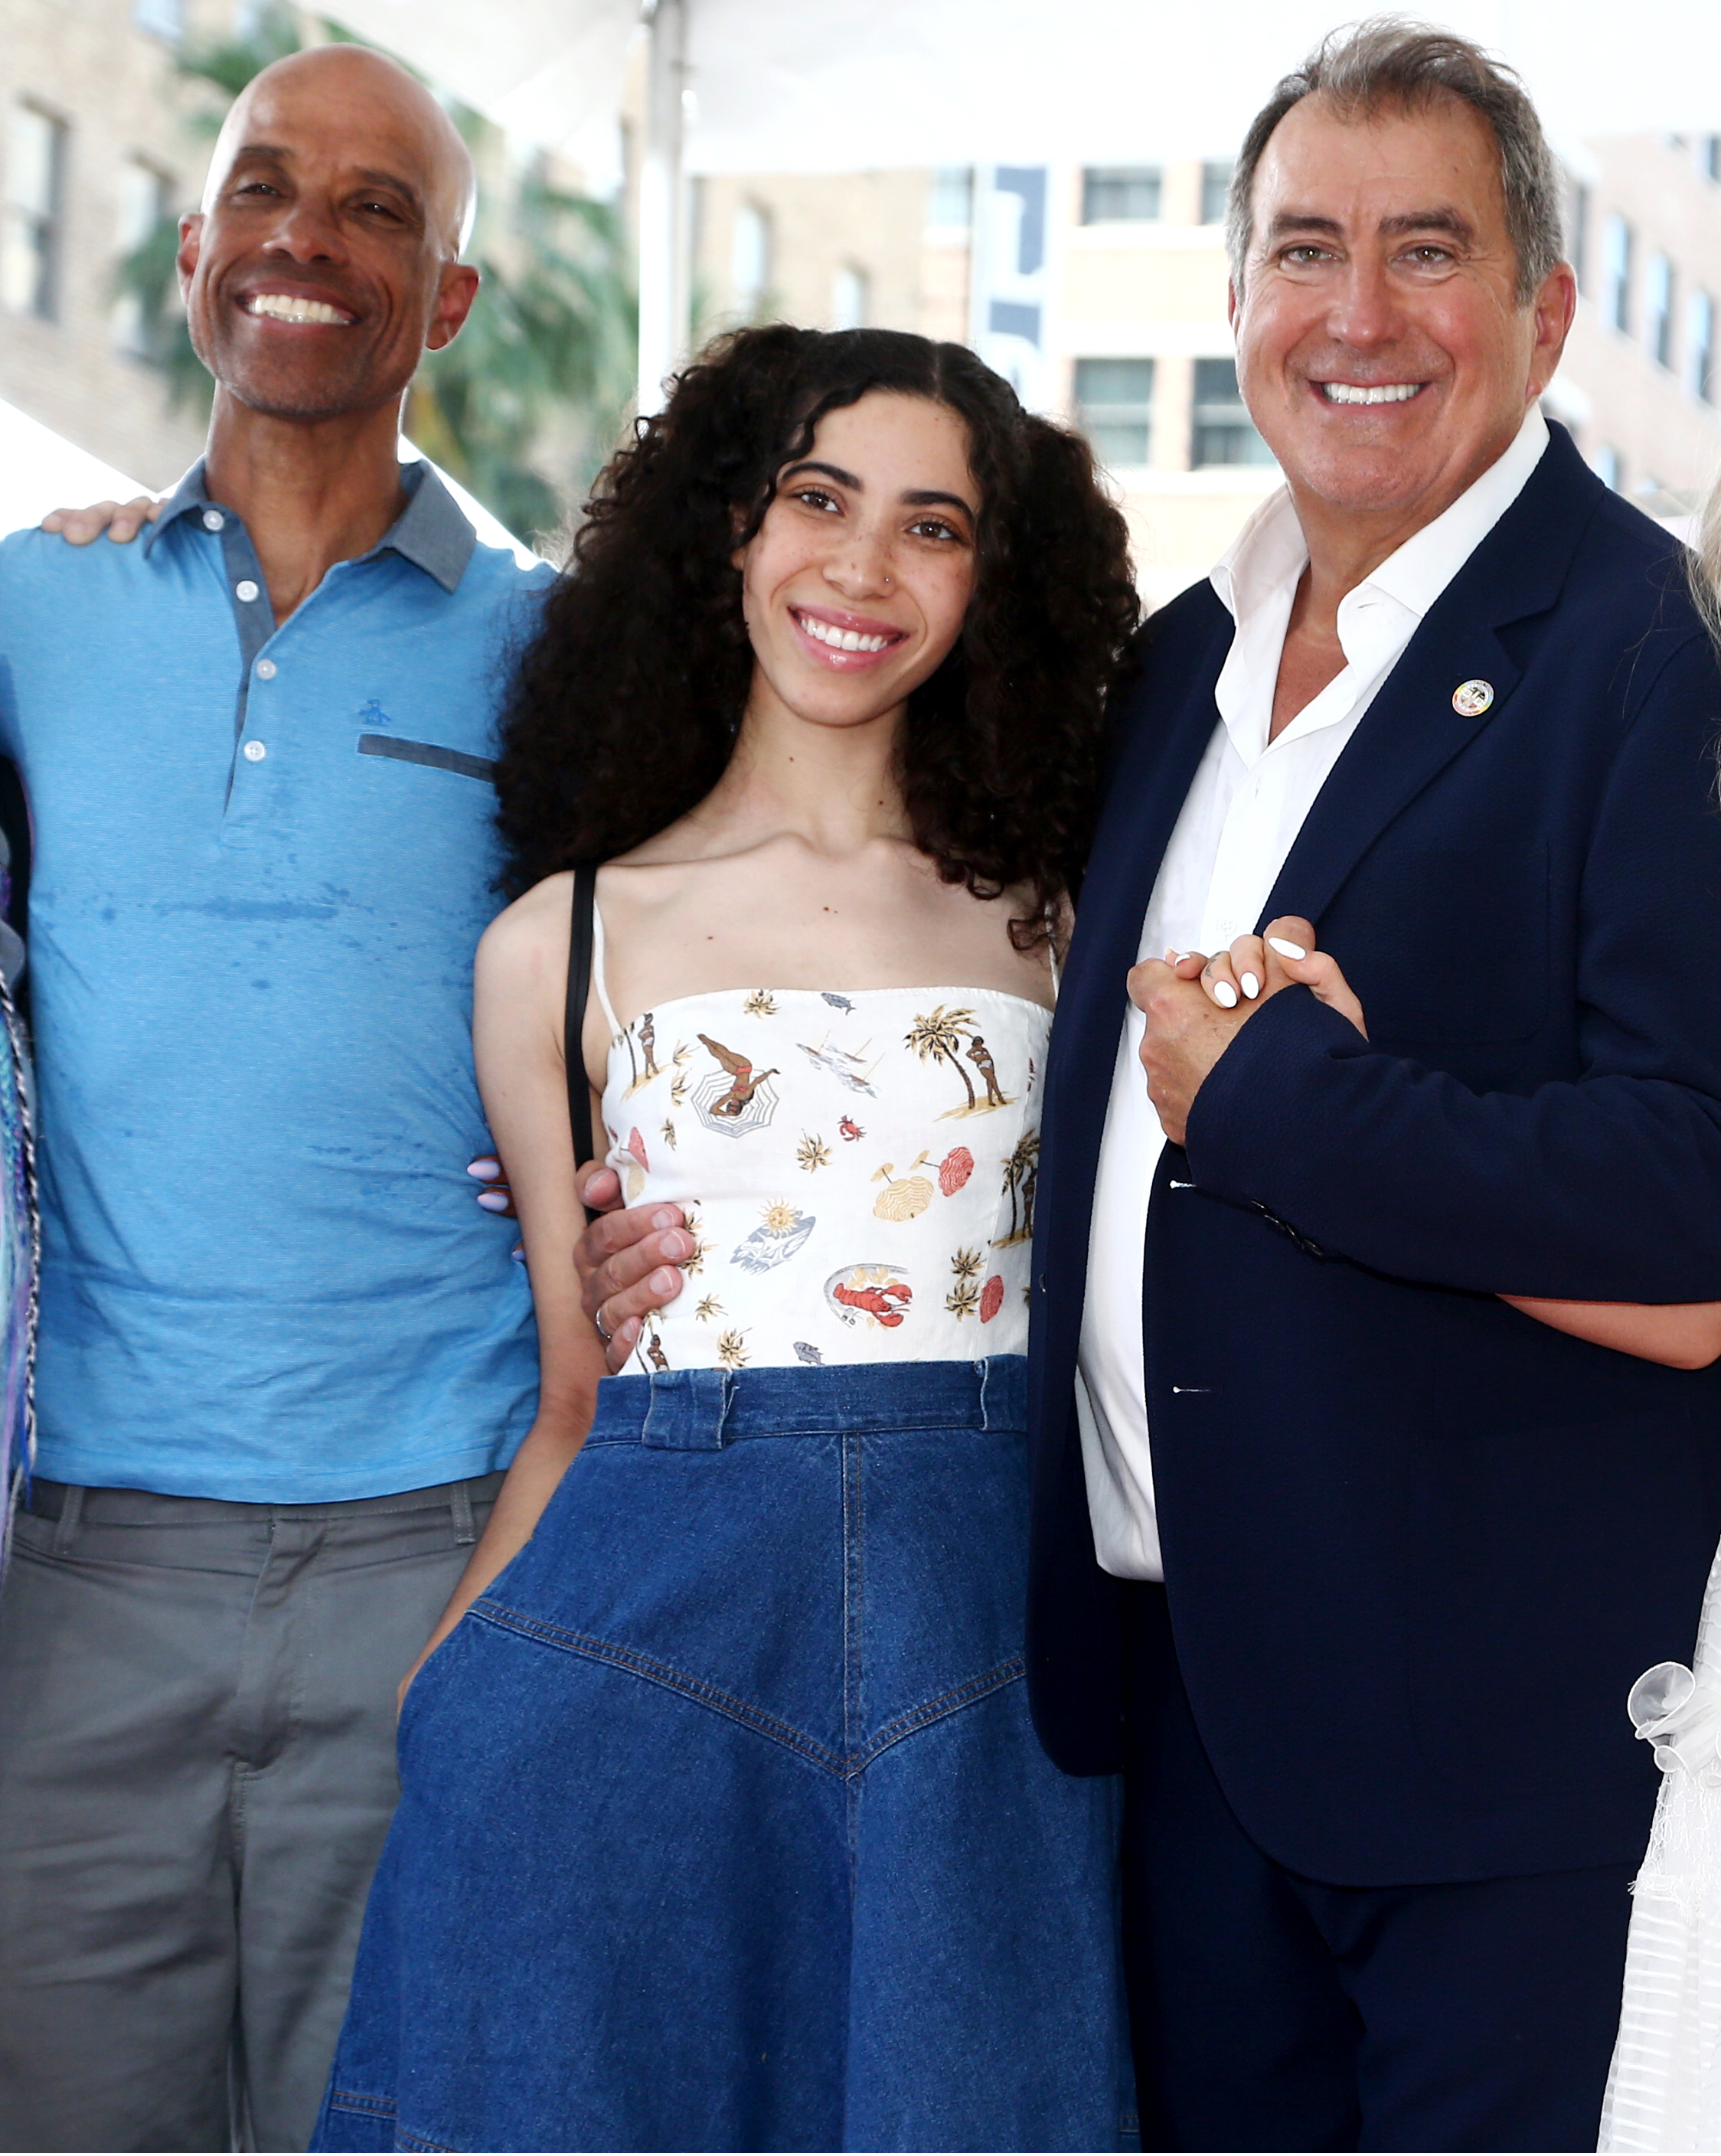 Cameron Boyce S Family Joins Kenny Ortega At Walk Of Fame Ceremony